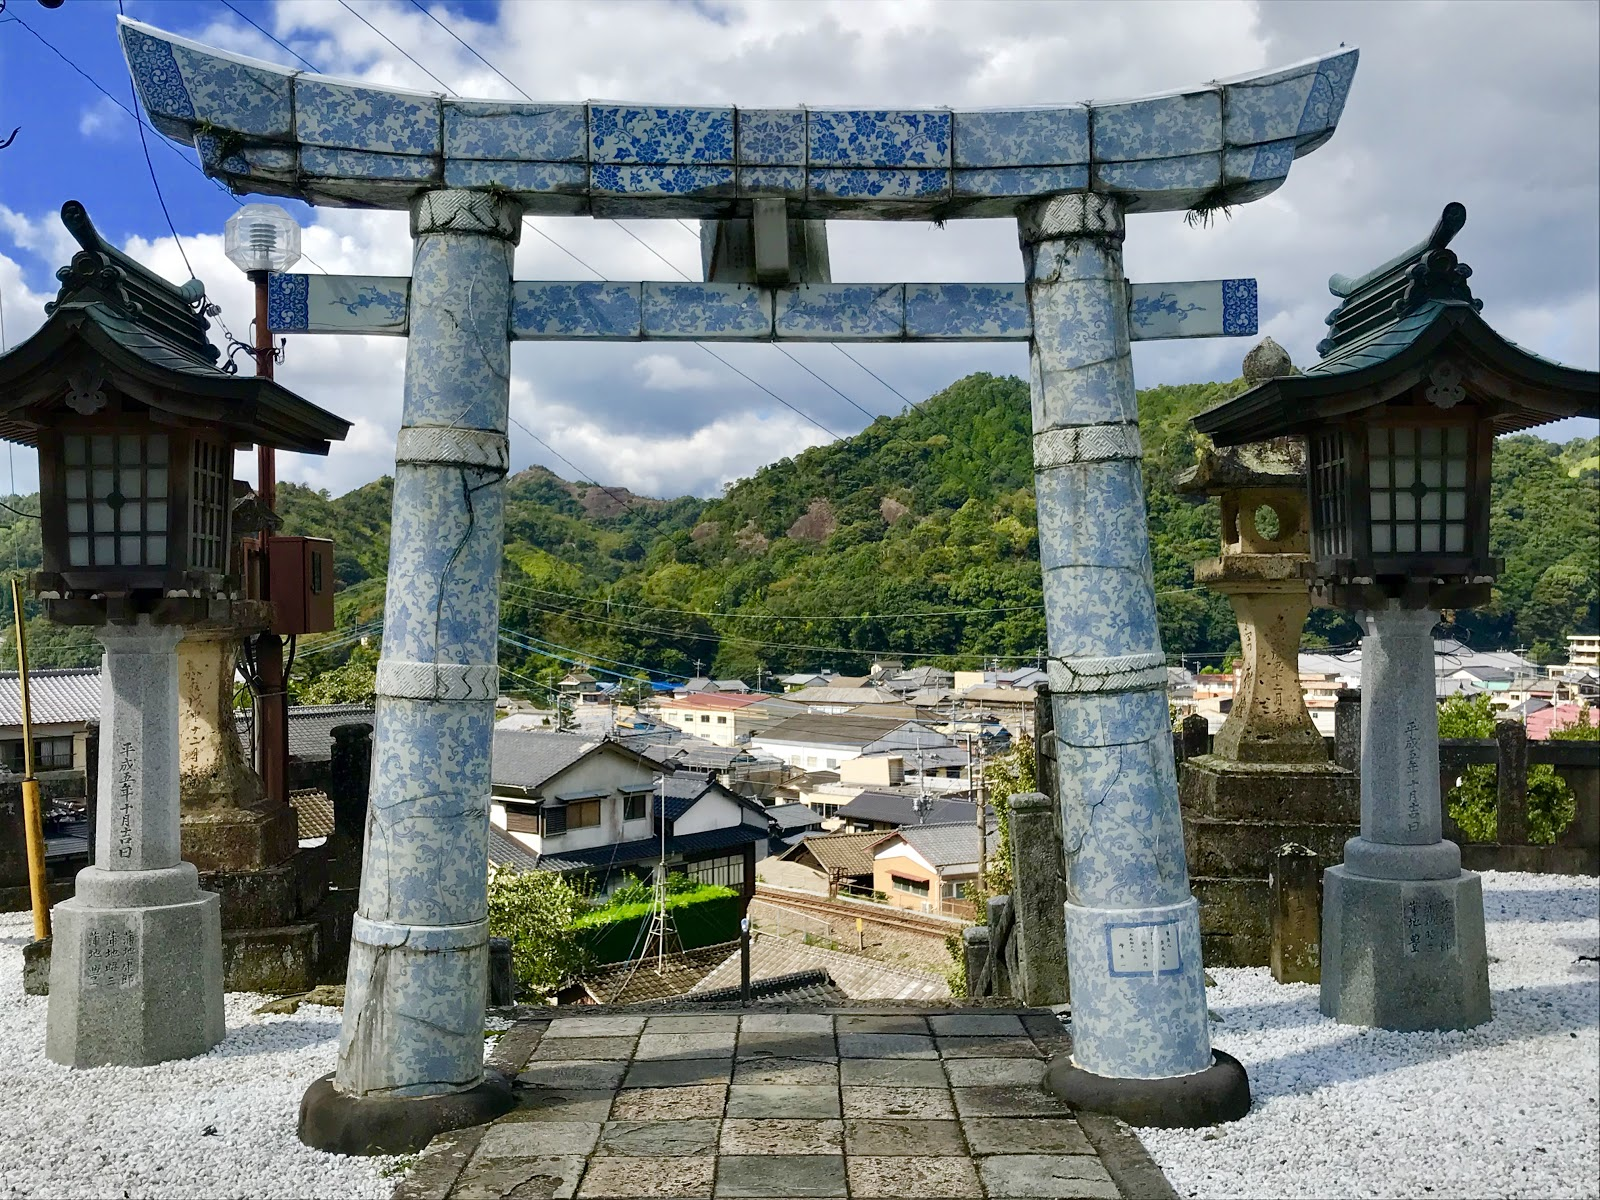 A picture of the torii gate of the Tozan Shrine